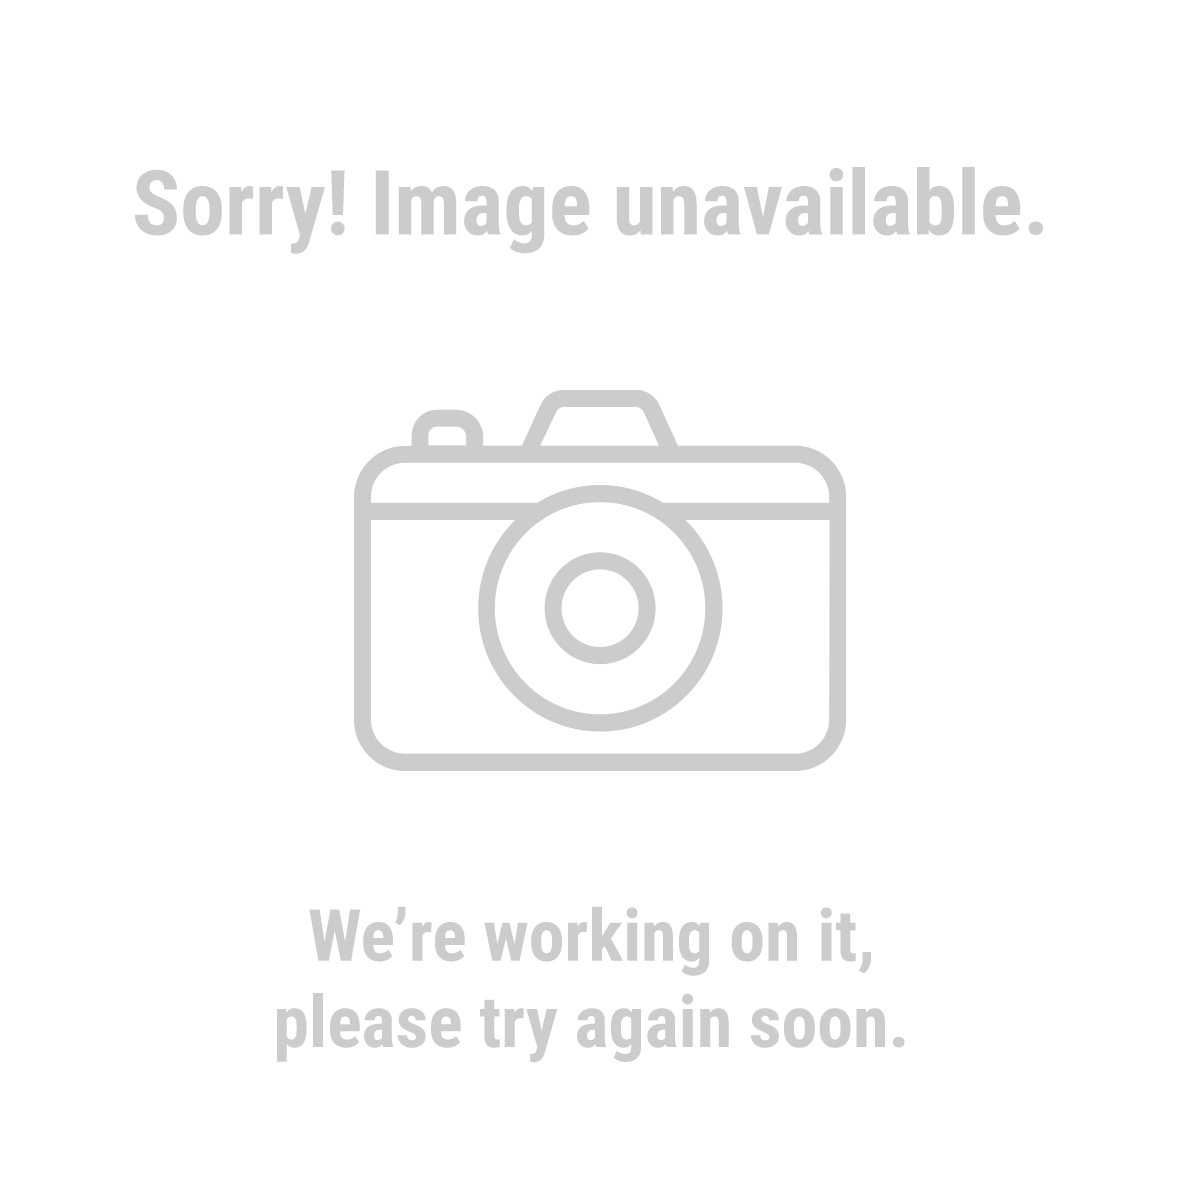 Finch and McLay Flooring 97642 Pack of 2 Carpet Cutter Replacement Blades